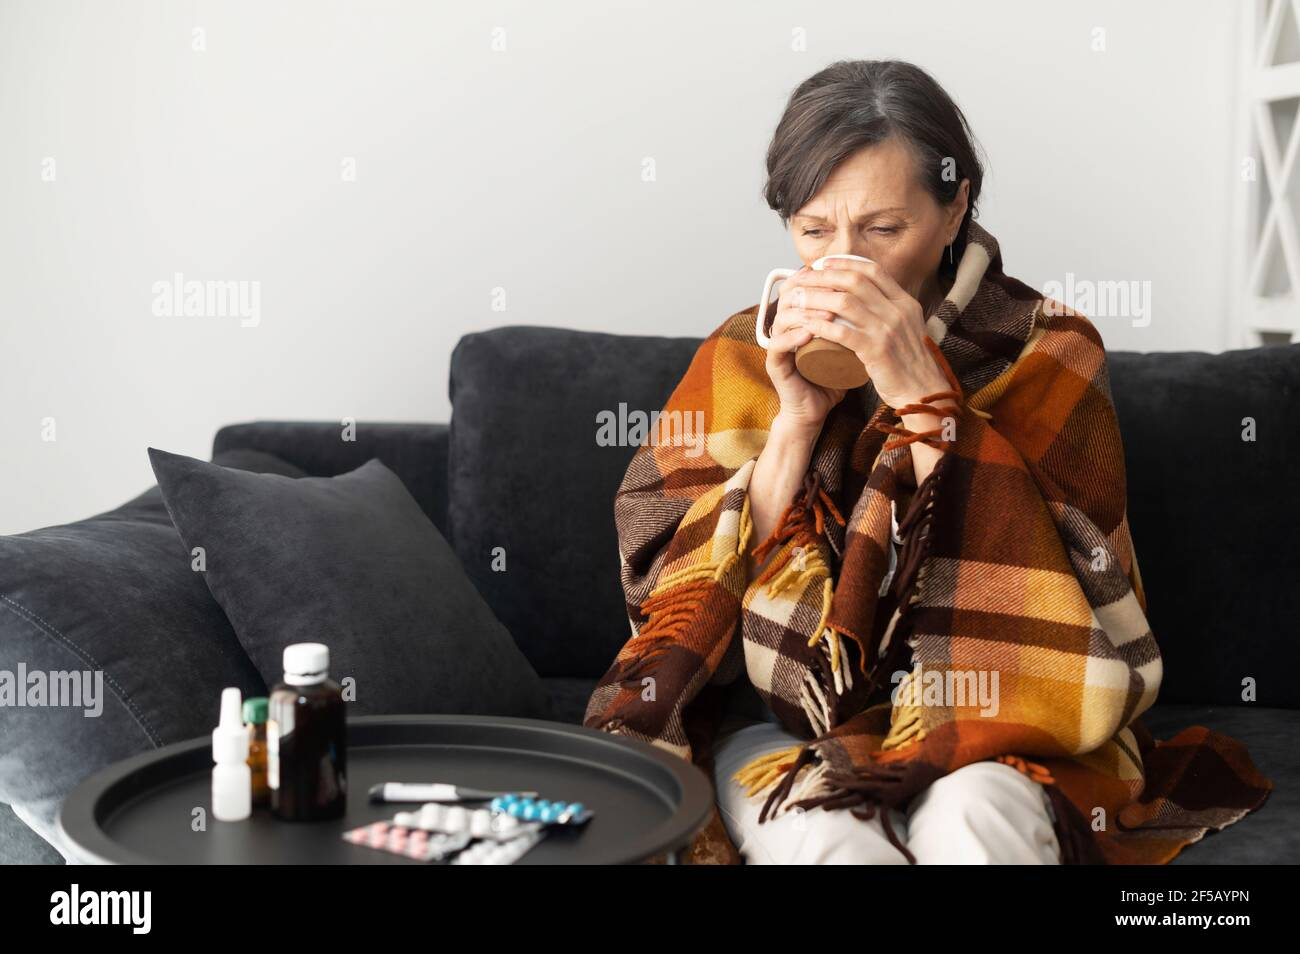 Home alone hot women A Senior Woman Feels Unwell Sits Down On The Couch Alone At Home Covered With Blanket Feels Chill An Elderly Woman Suffers From Viral Disease Has Fever Treats Herself With Hot Remedy